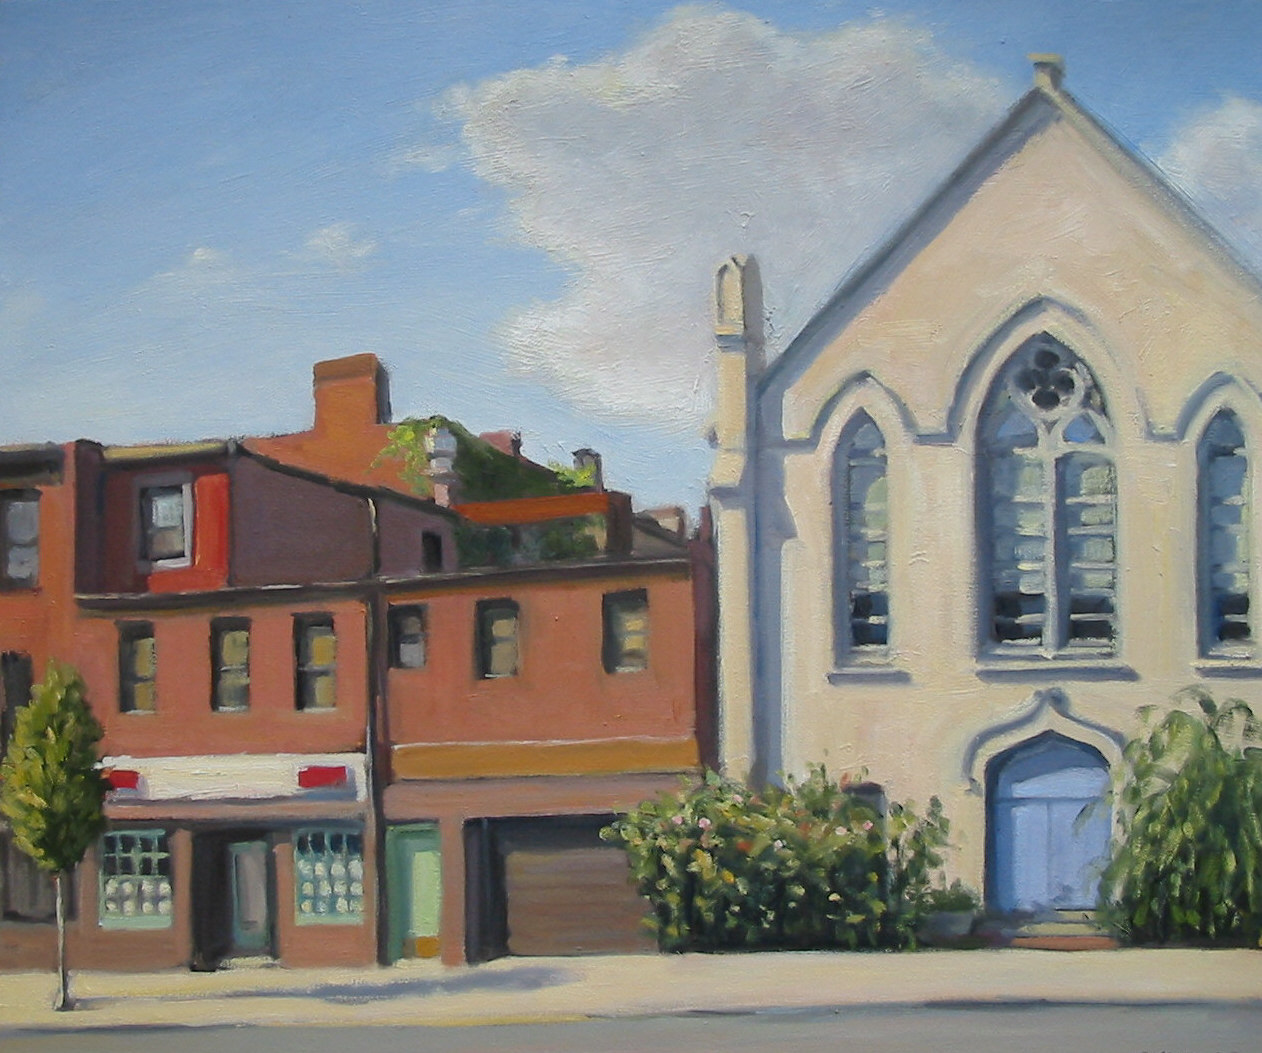 Old Church and Bodega, oil on linen, 20x24 inches